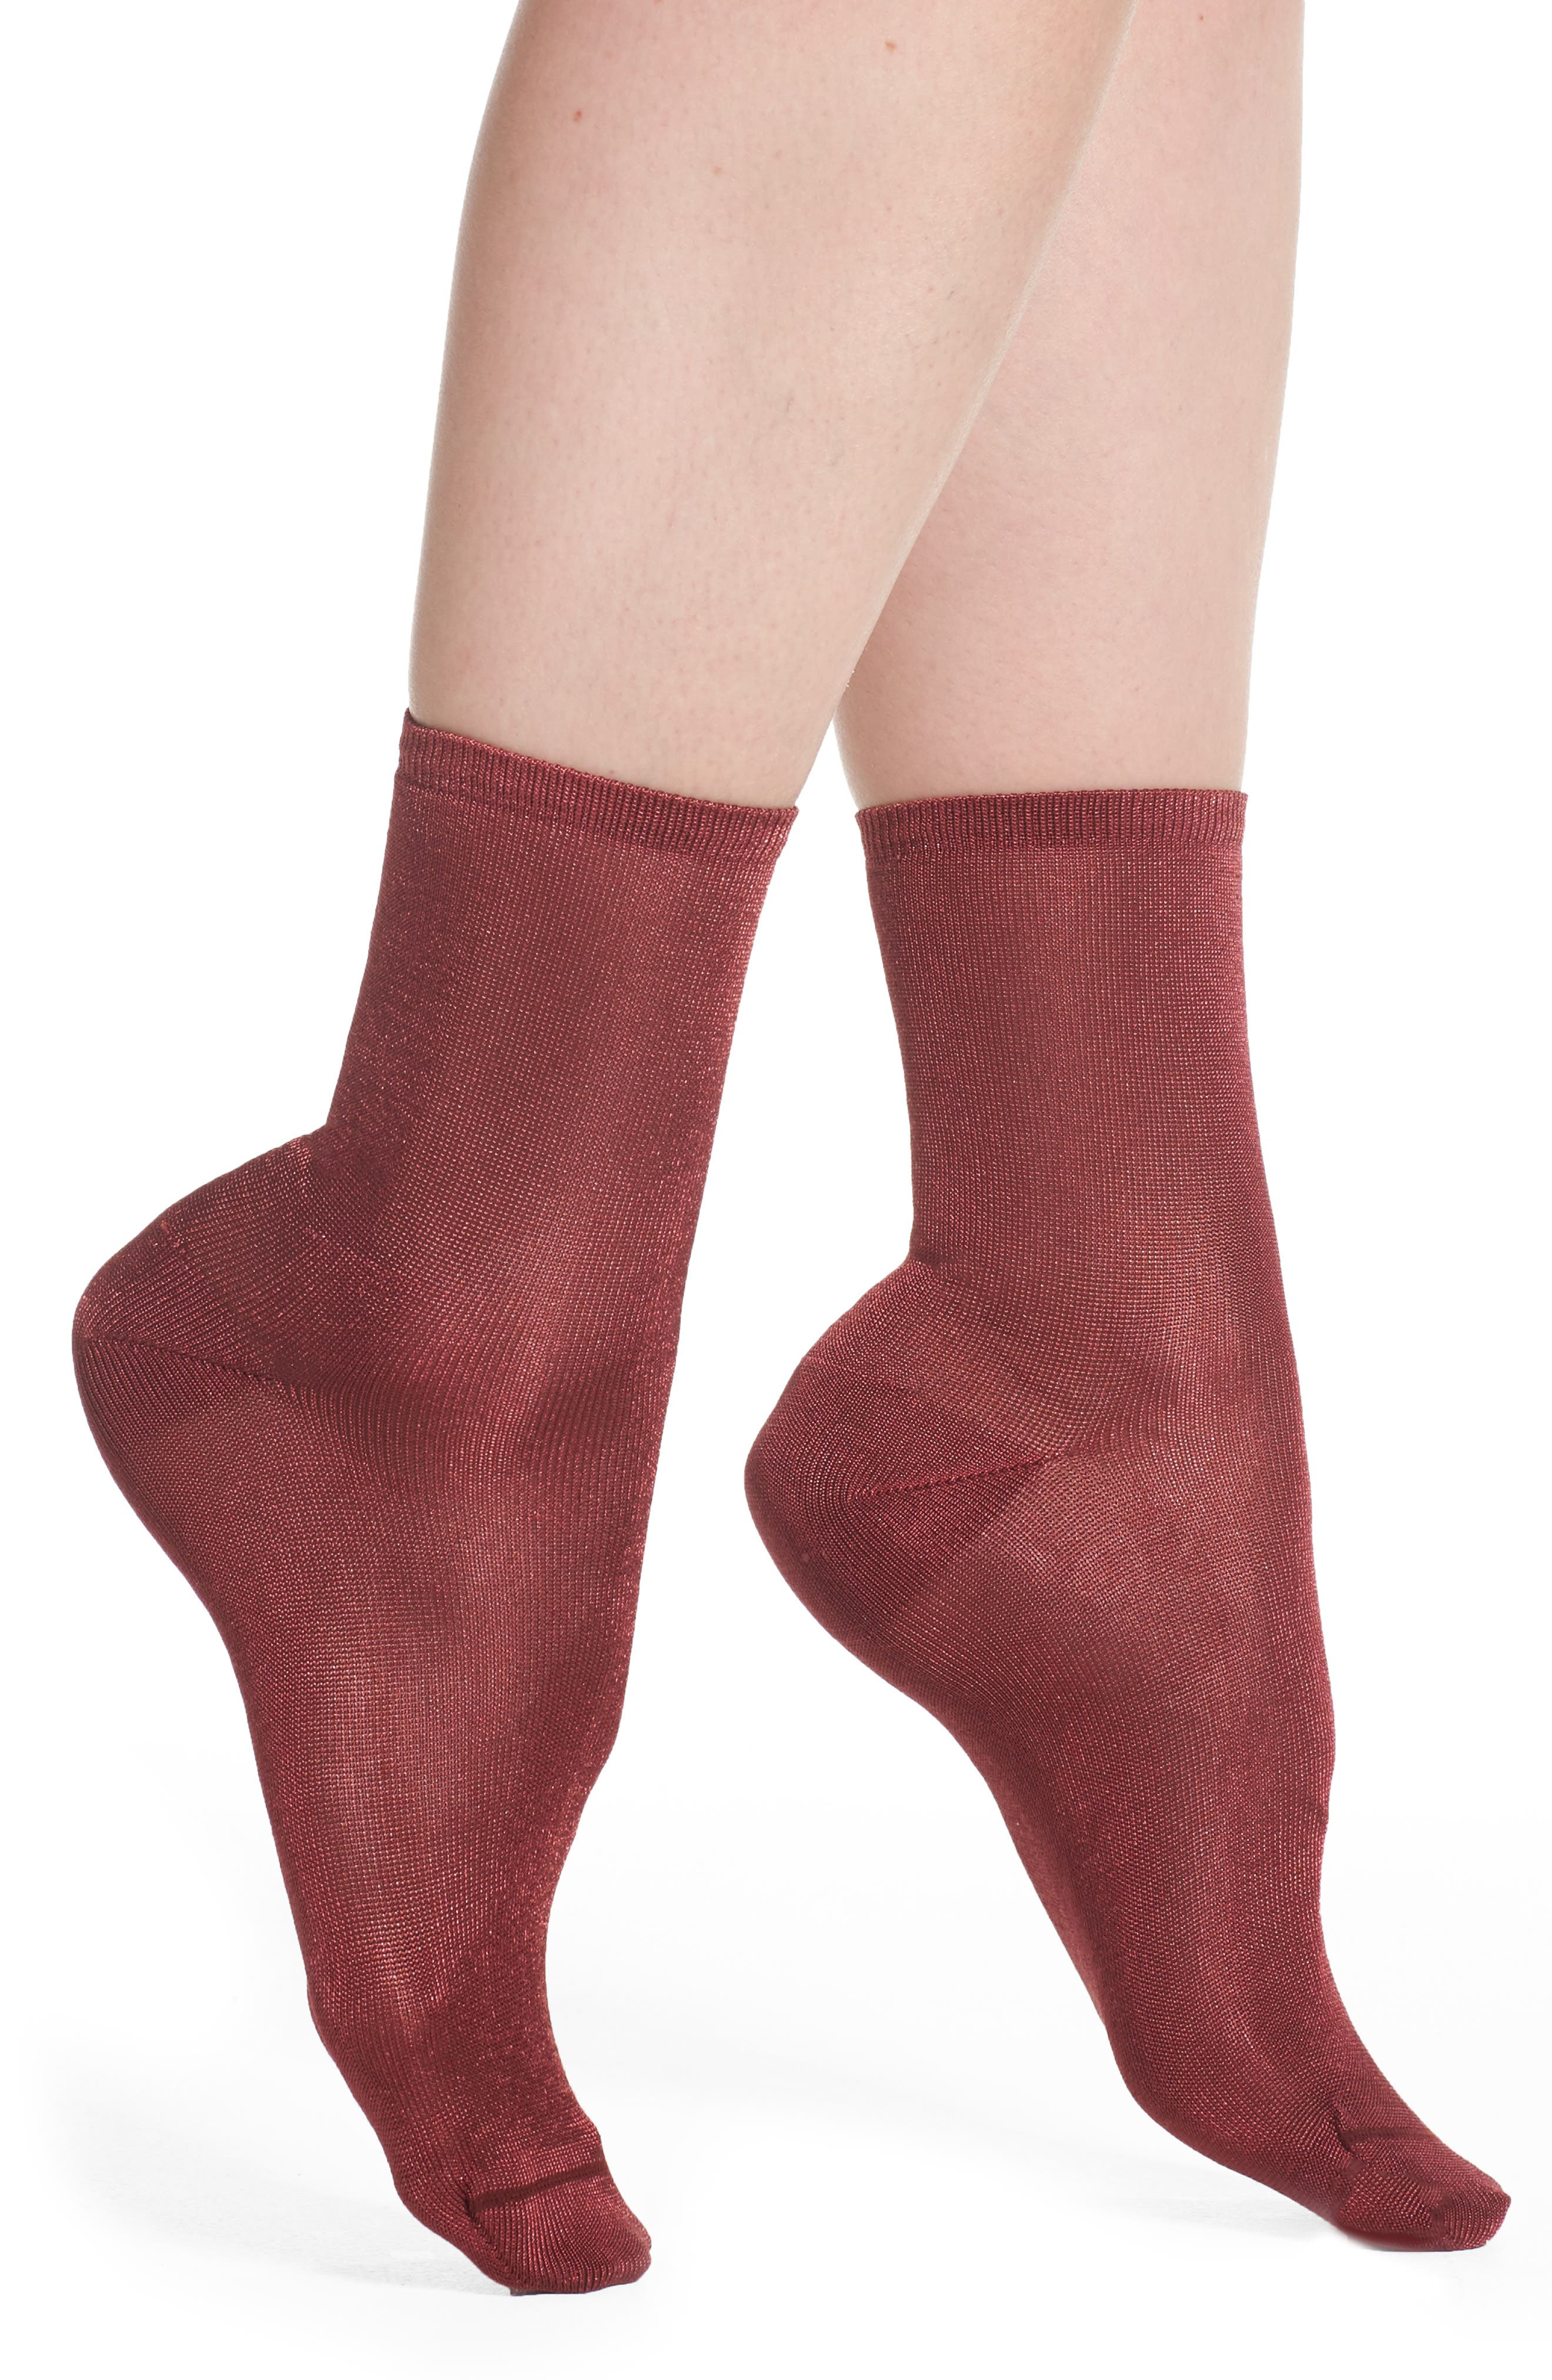 Sweetly Sheer Ankle Socks,                             Main thumbnail 1, color,                             Red Cordovan